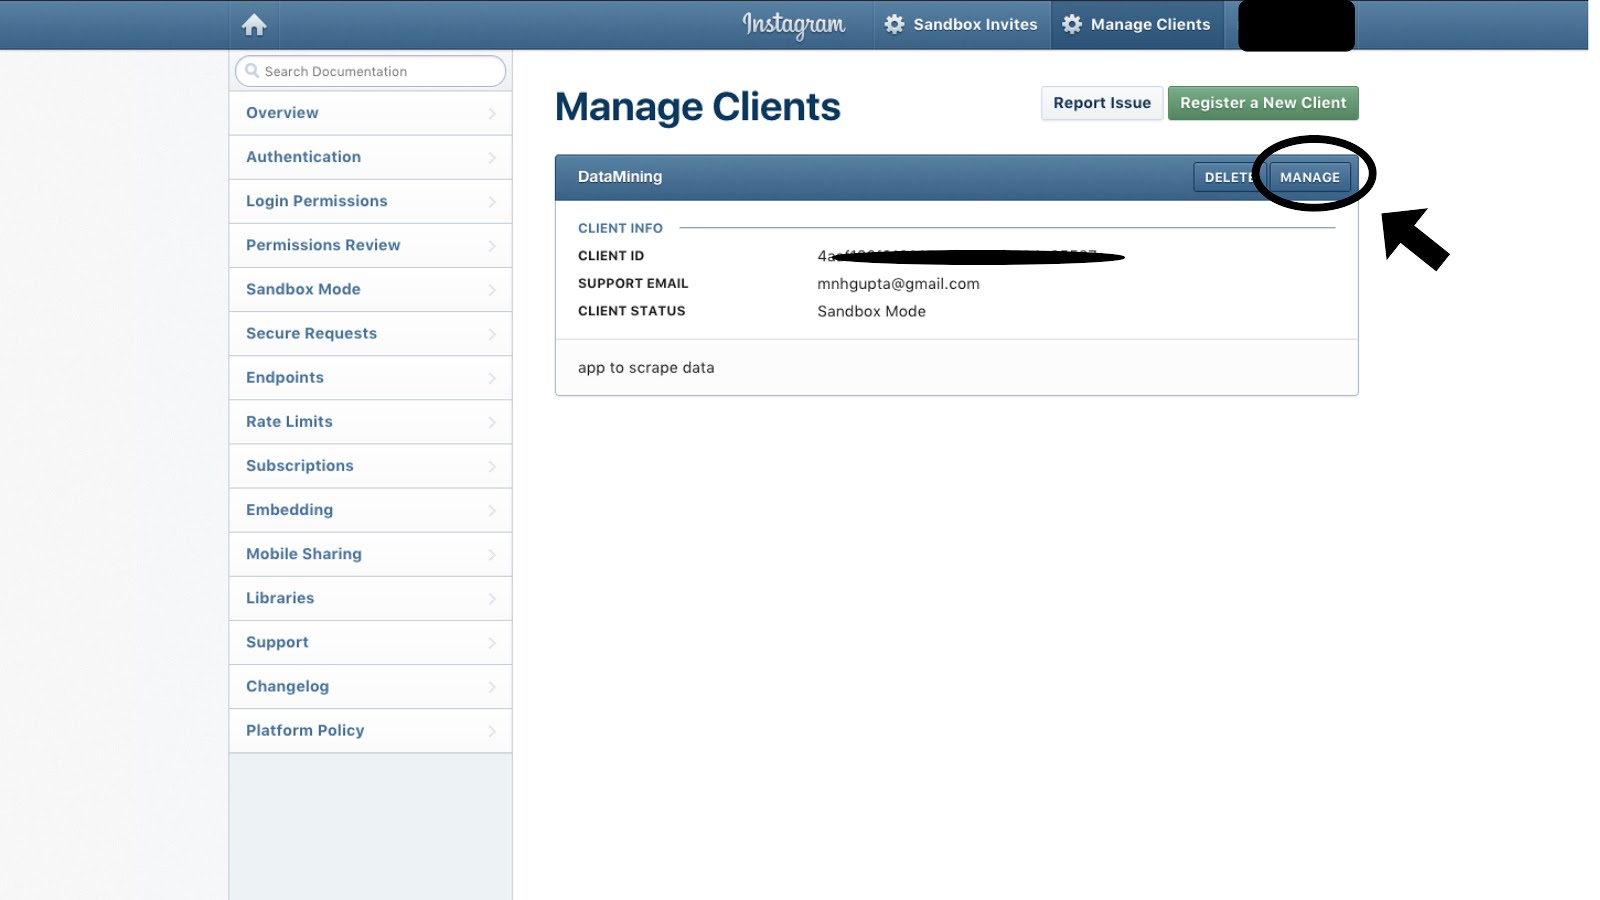 1c44eefbfa96 4. Click on the manage clients and you will see the following window. click  on the manage option.